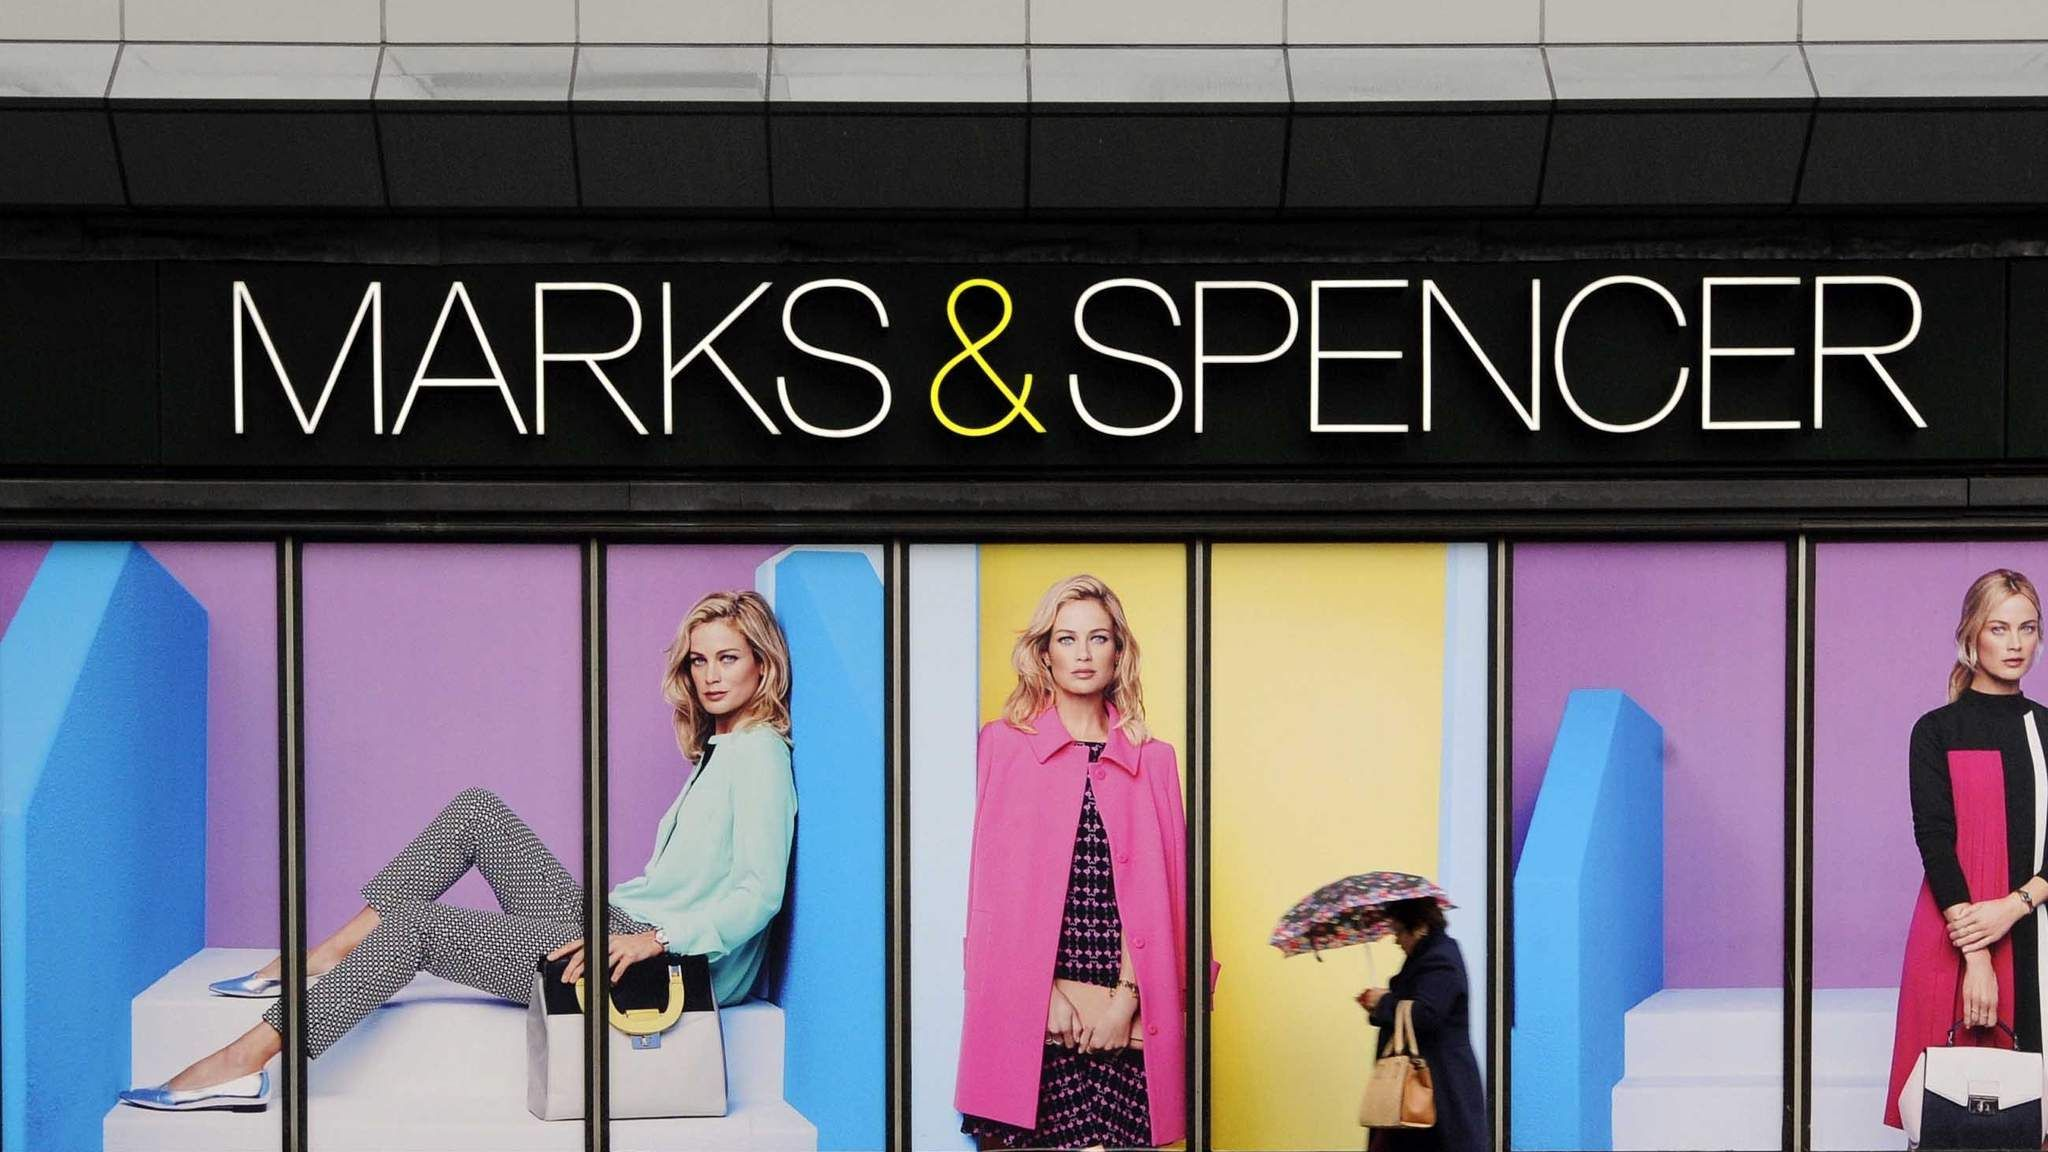 how to improve marks and spencer teamwork And whilst marks & spencer's announcement is by no means eradicating the human element from its customer service processes, it does raise the question about whether it is removing a vital part of the human interaction that customers still hold dear.